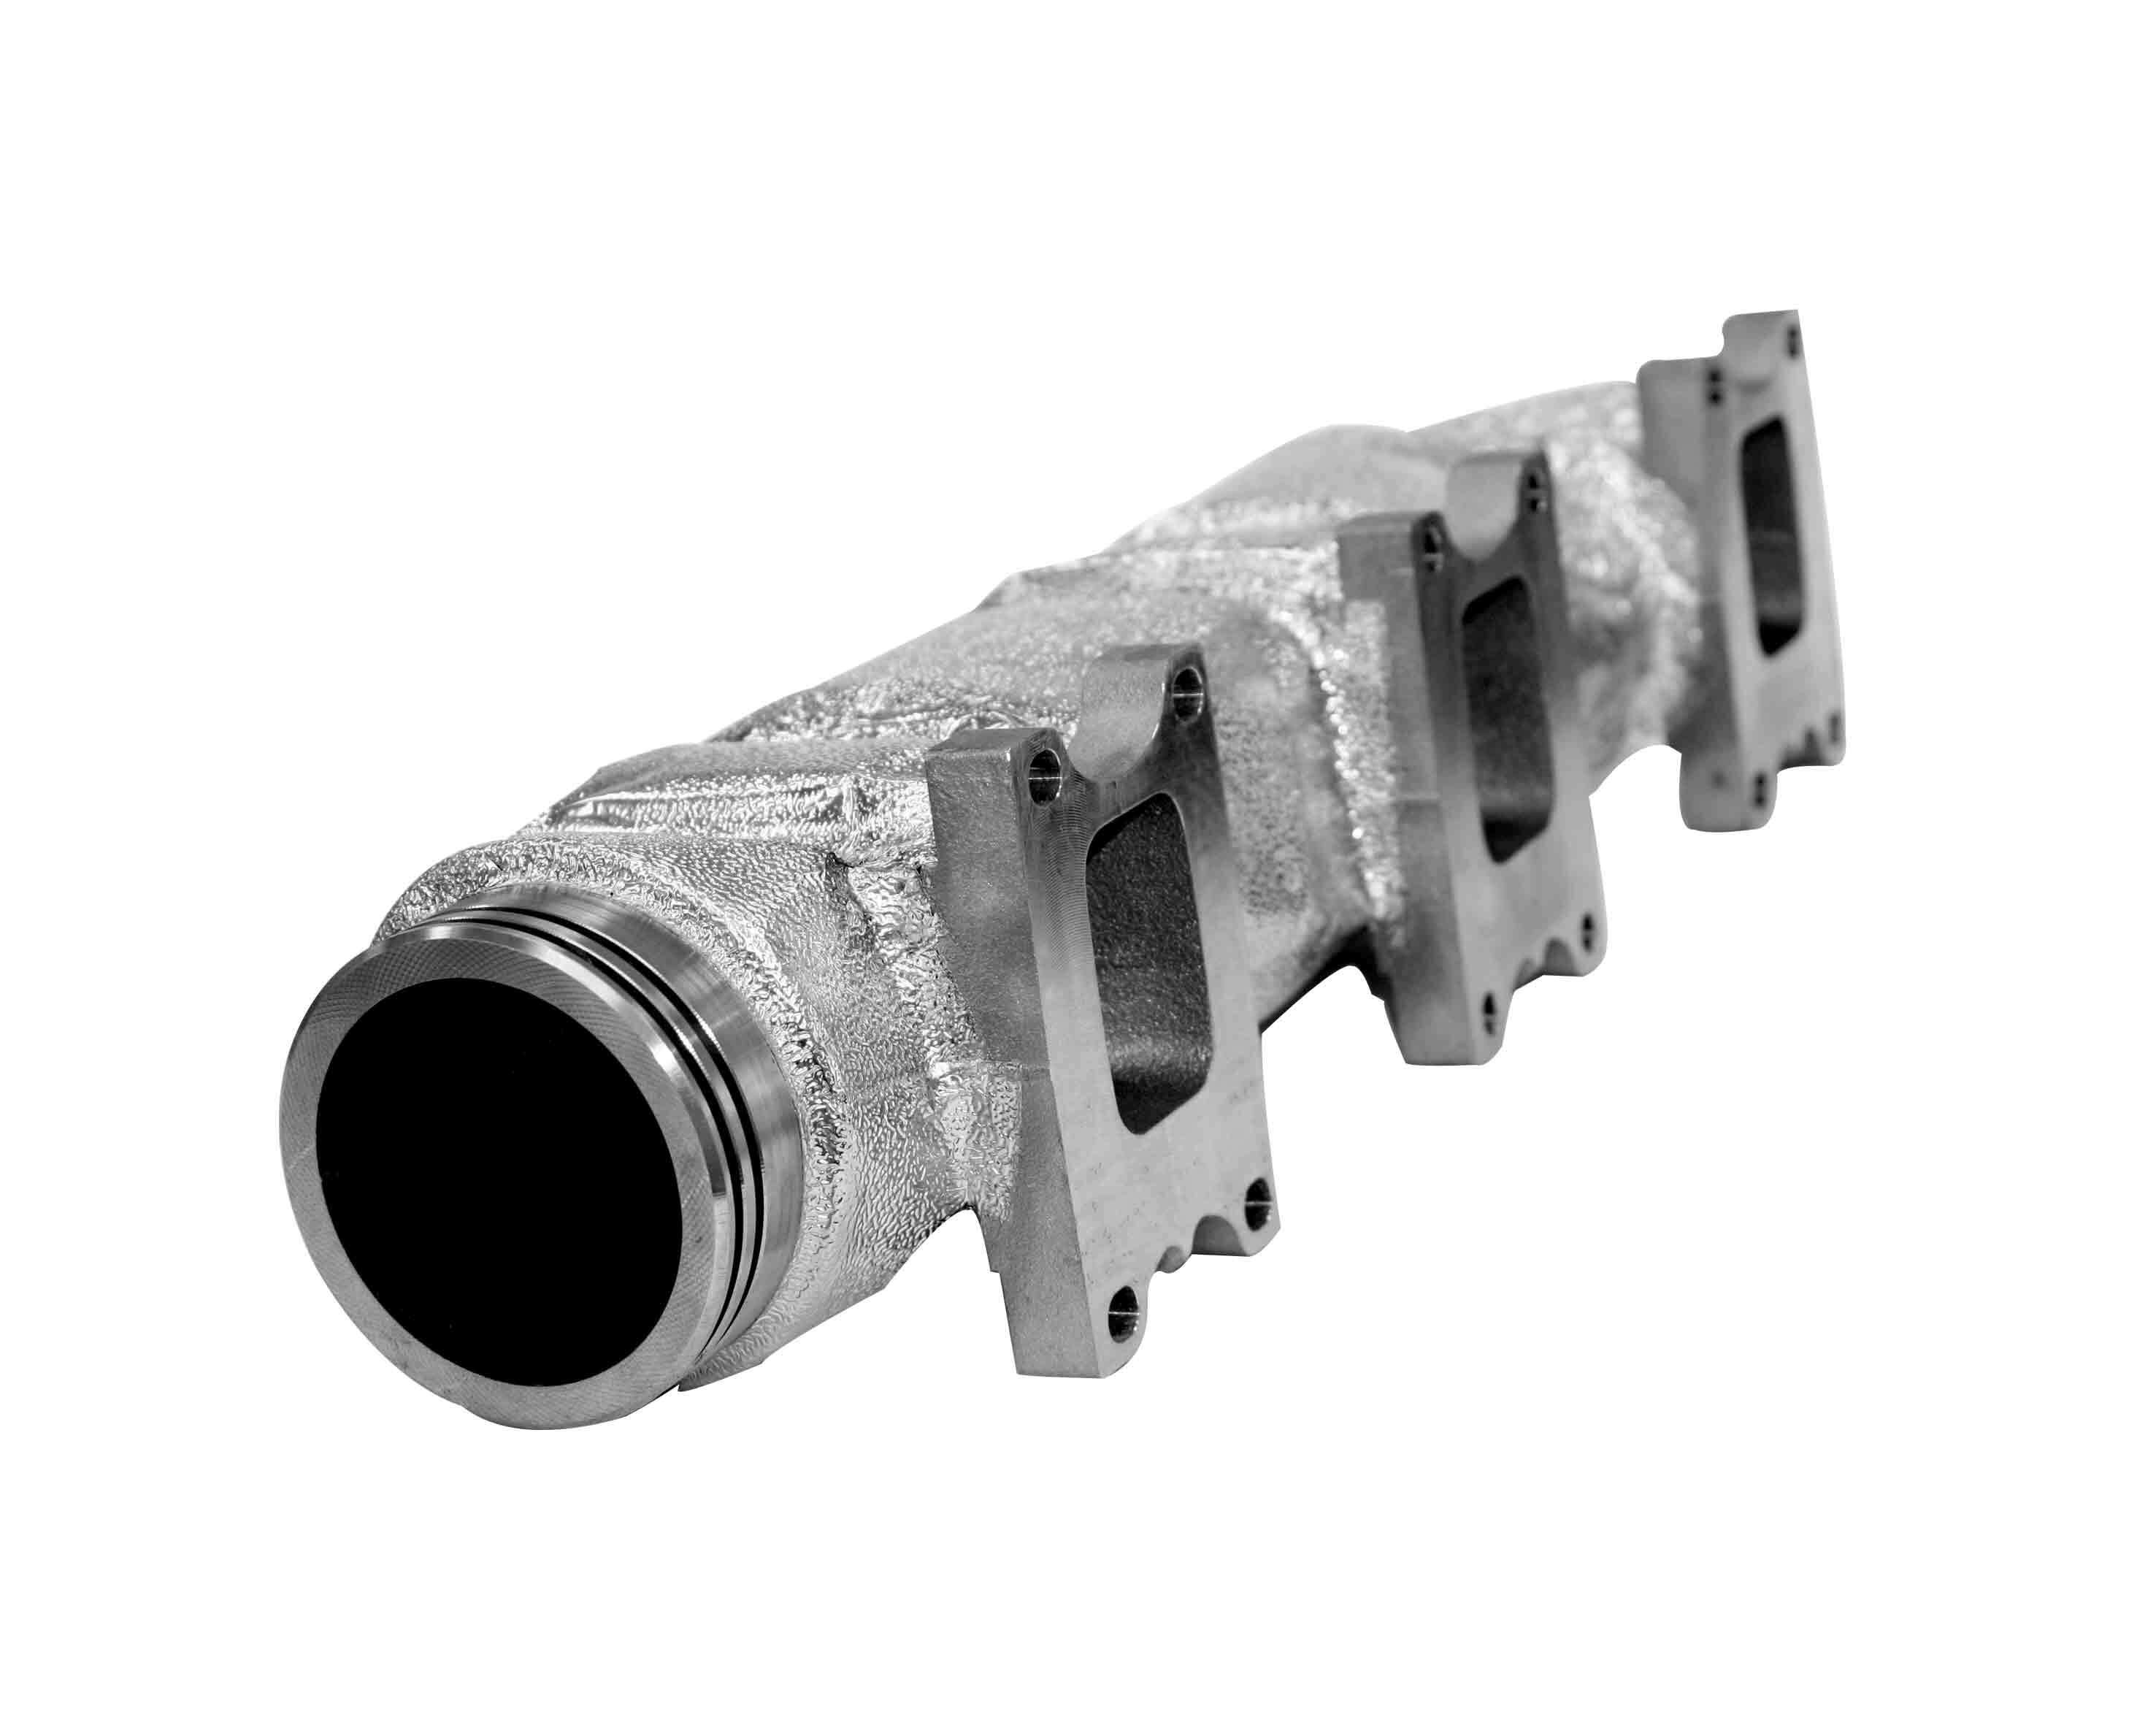 Insulation of an exhaust manifold - Ni-Resist